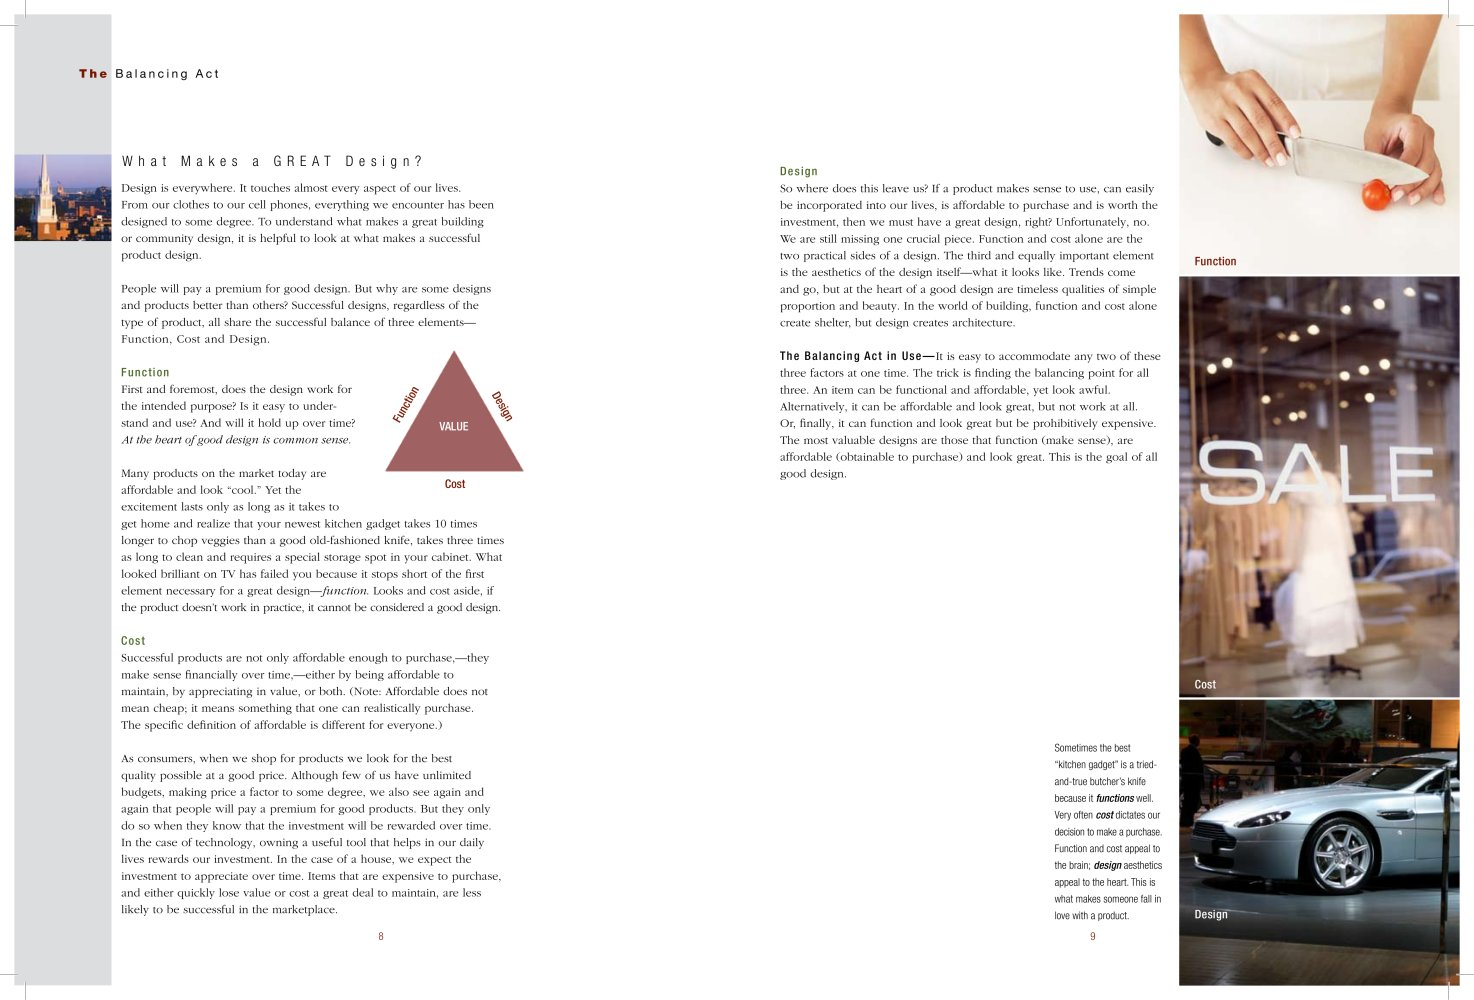 The Balancing Act  What Makes a Great Design   James Hardie   France     The Balancing Act  What Makes a Great Design   1   3 Pages